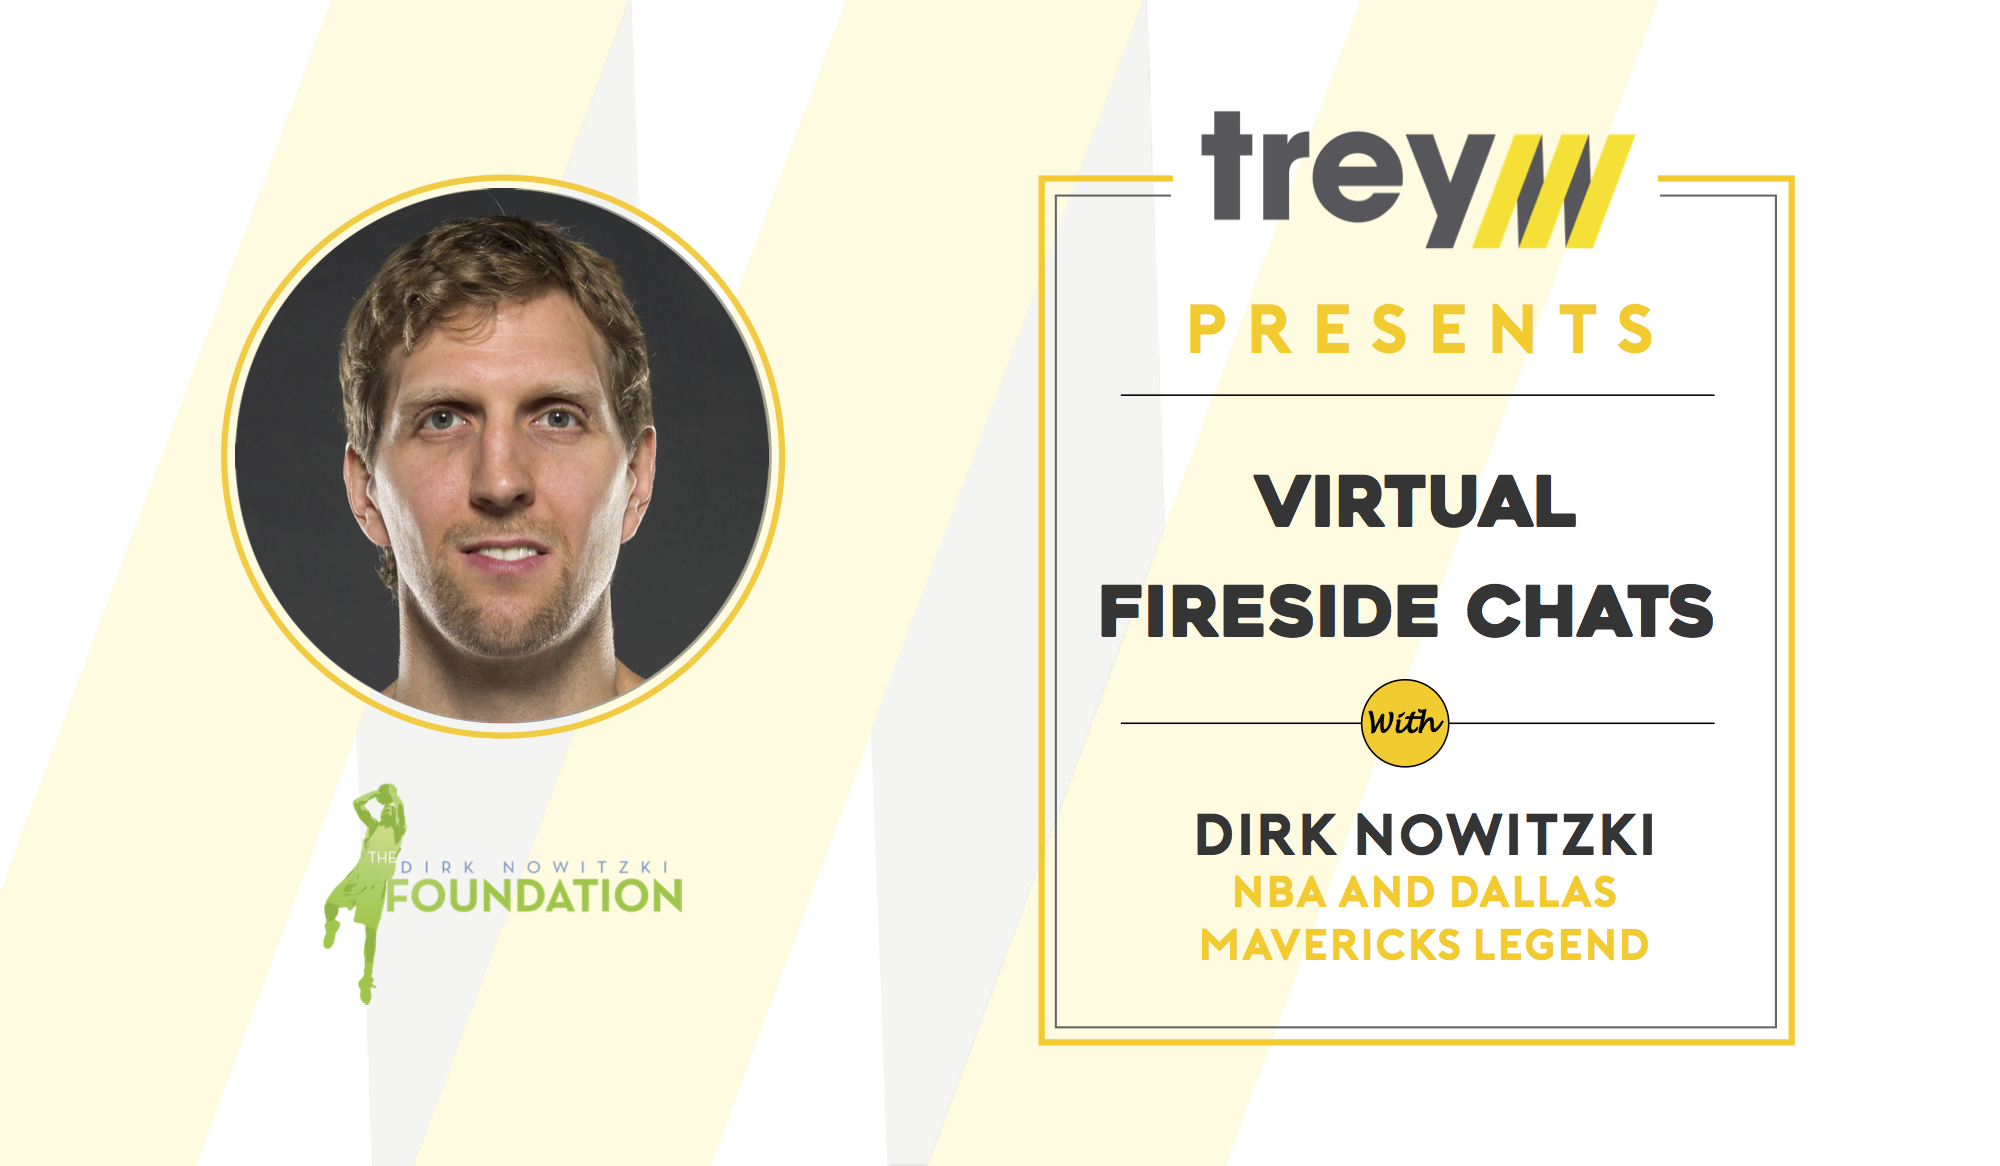 Dirt Nowitzki Fireside Chat